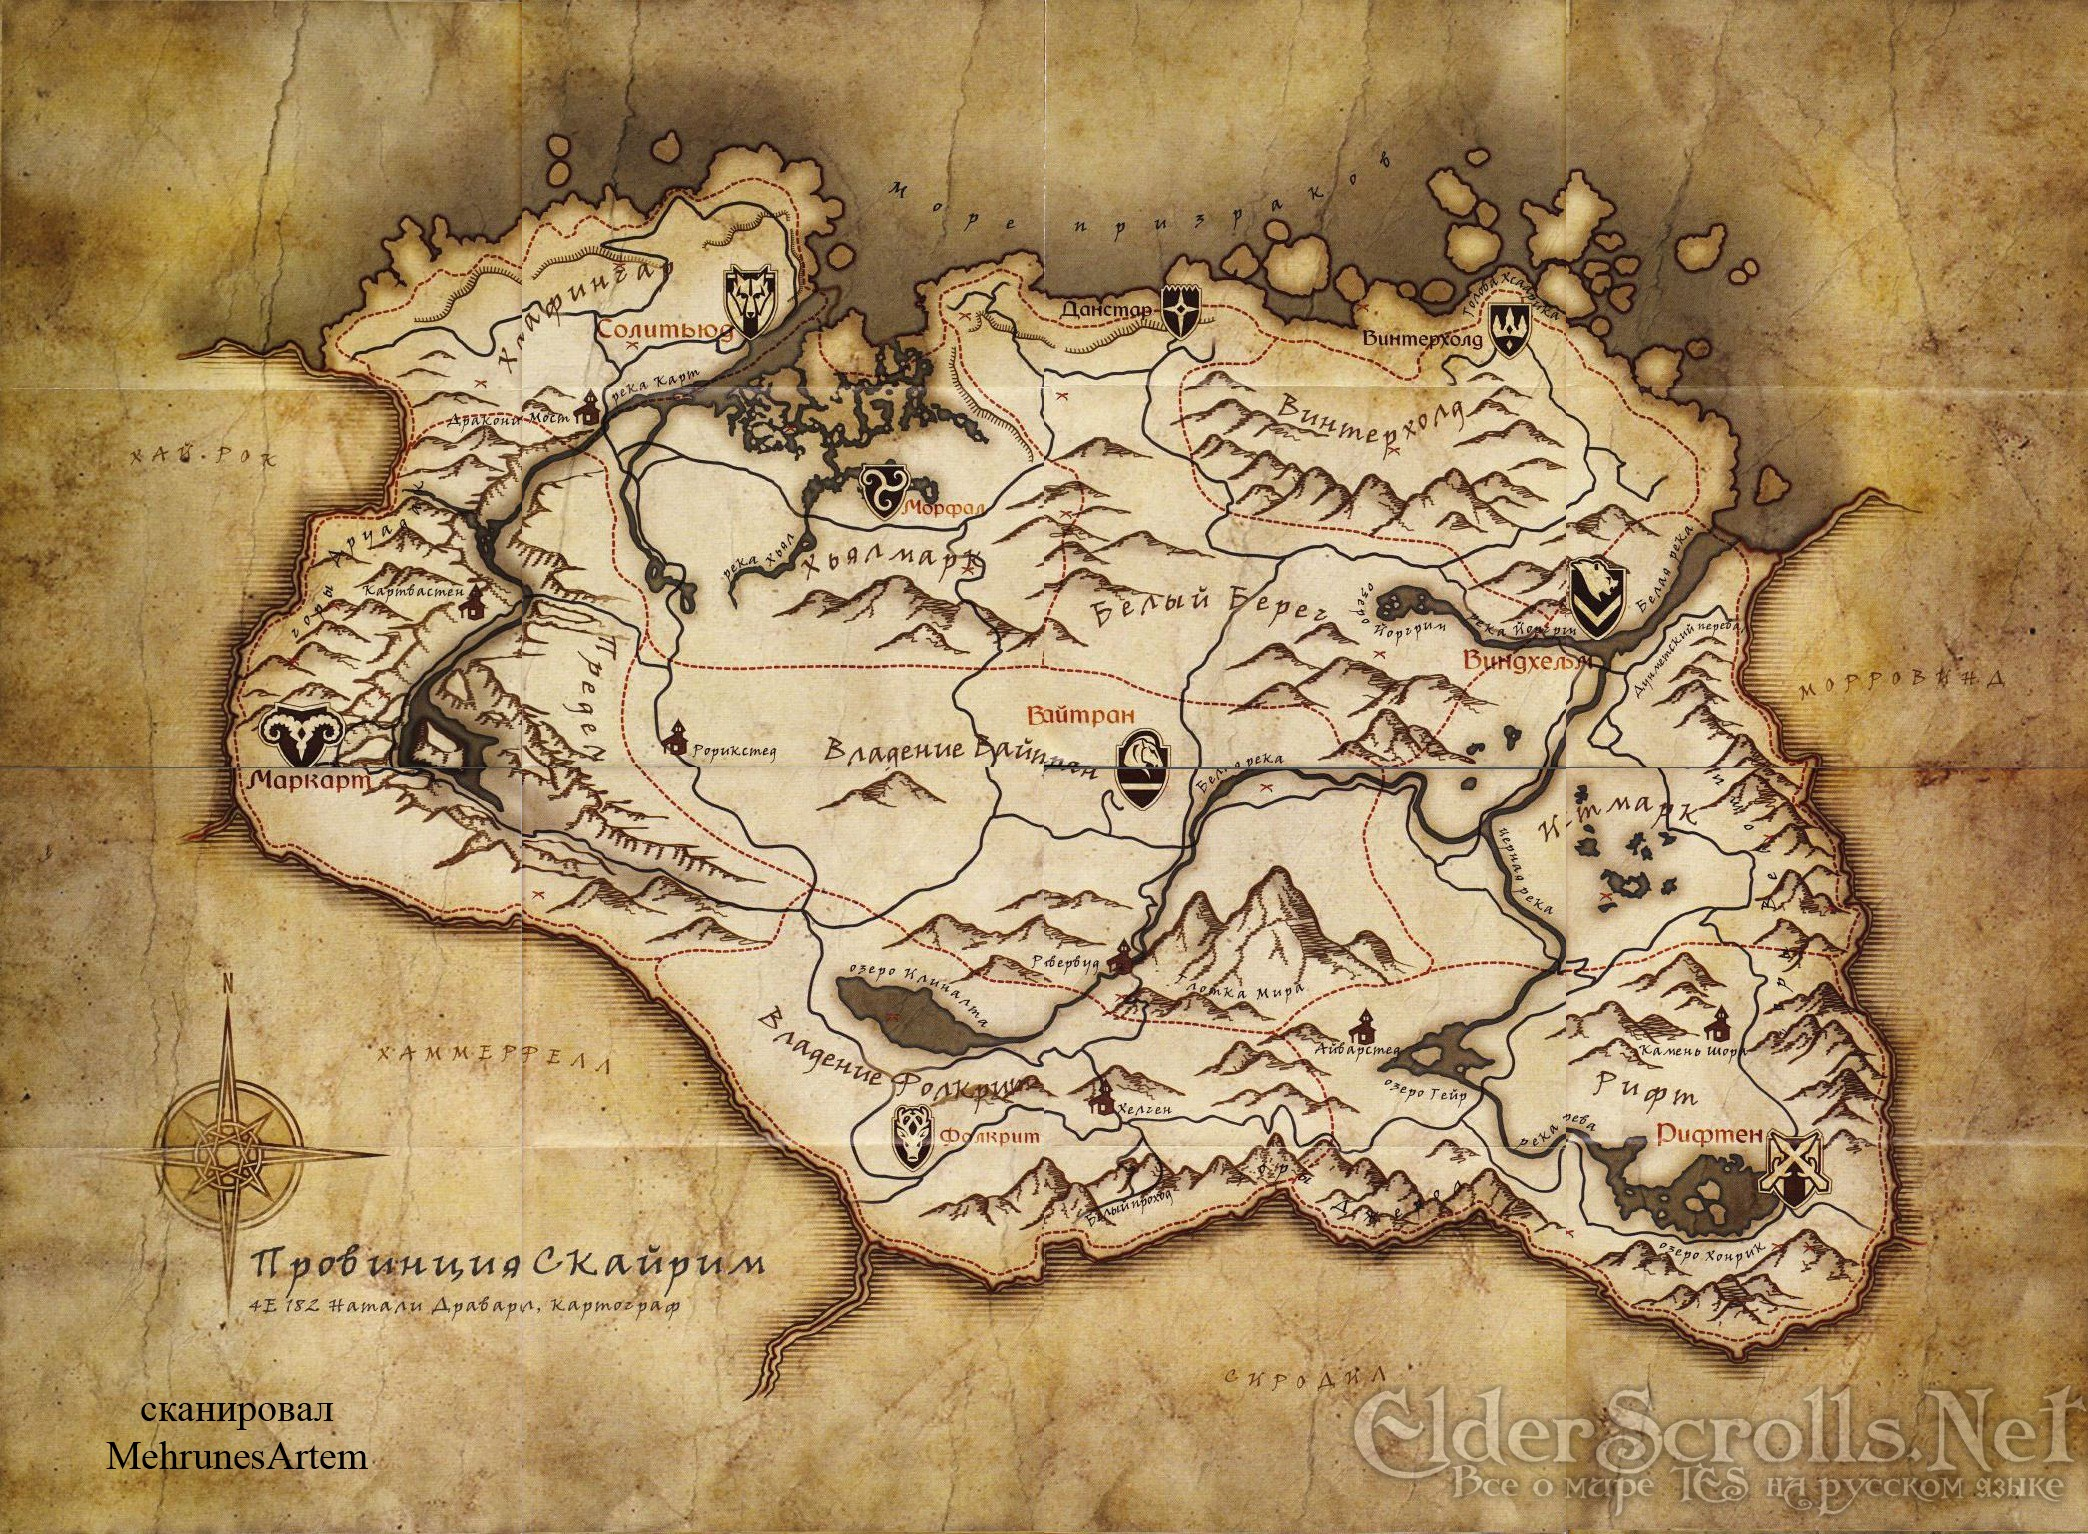 Skyrim Epic Map Appears, With A Twist - Just Push Start